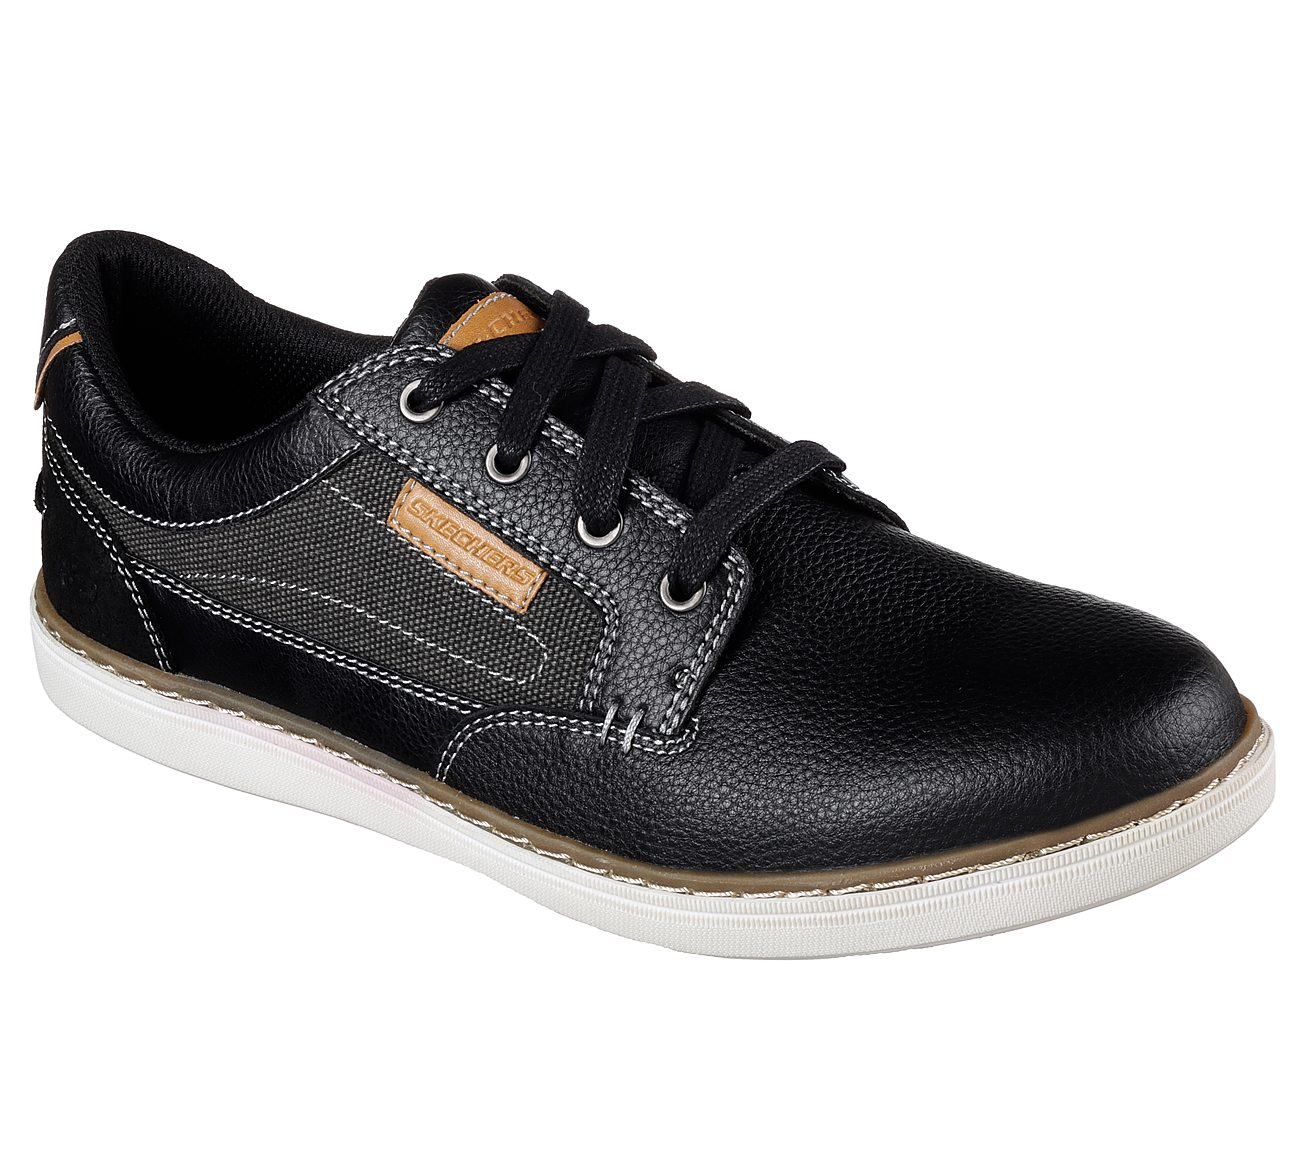 2f5af00a09aa Buy SKECHERS Lanson - Reldon USA Casuals Shoes only  46.00